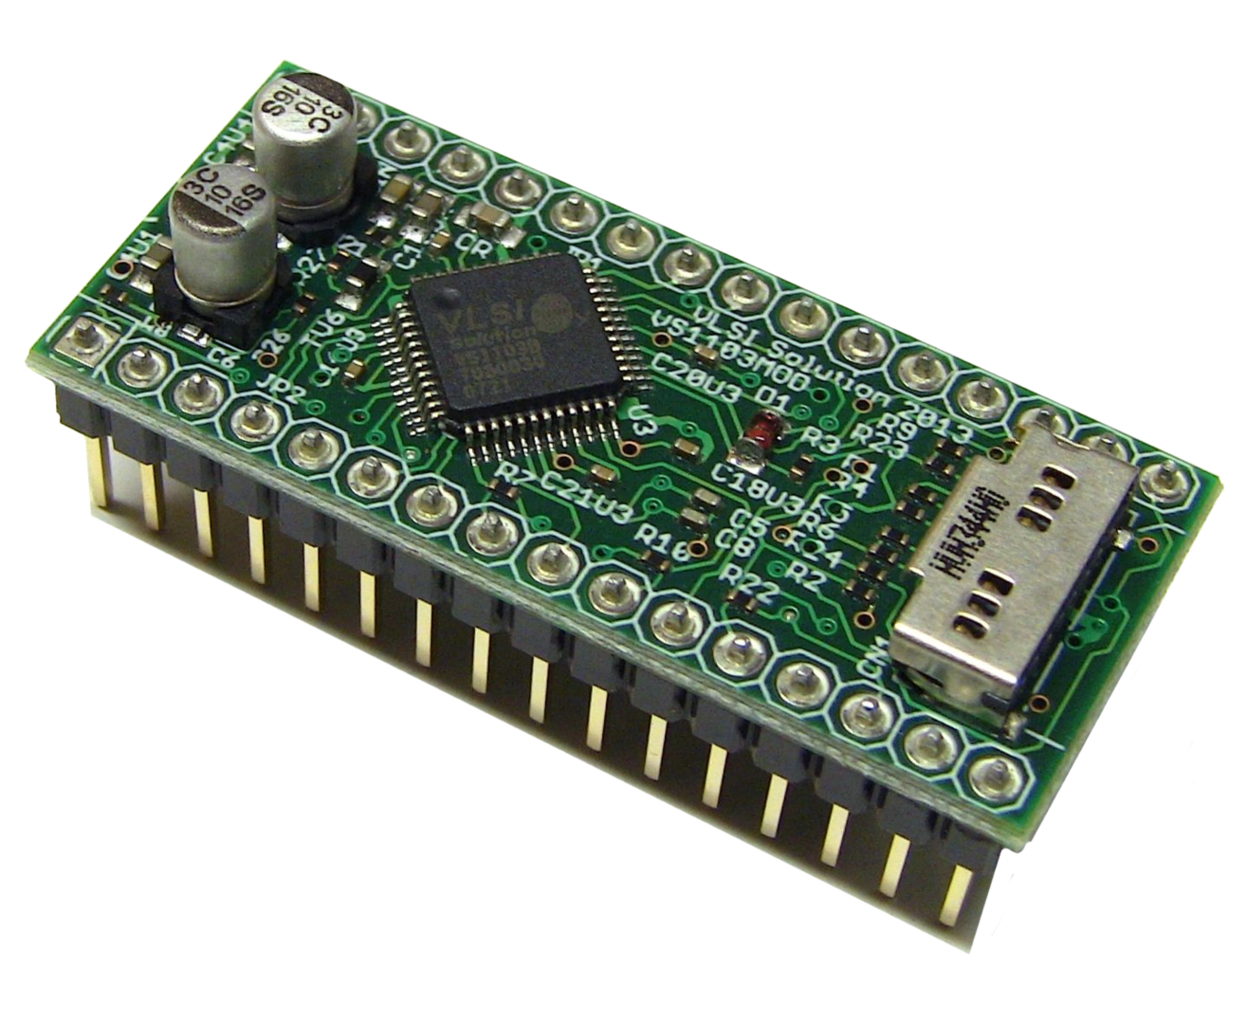 VSMD321V060 VS1103 Module, 16MB Flash.